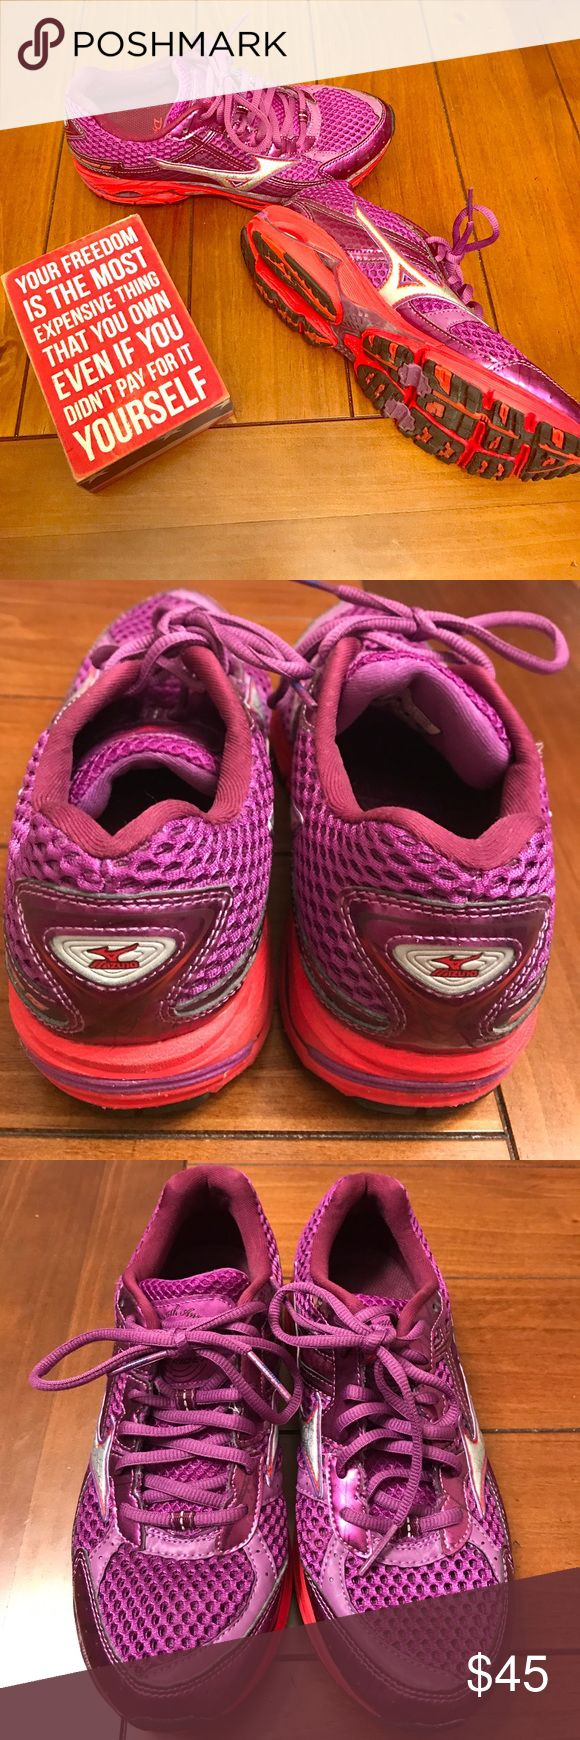 Mizuno 🏃♀️ Shoes The best running shoes! These have the cutest colors as well (maybe I'm bias as my fav color is purple!). These sneakers are designed to be better for your body while running. In excellent condition with only a handful of miles under their belt! Mizuno Shoes Athletic Shoes